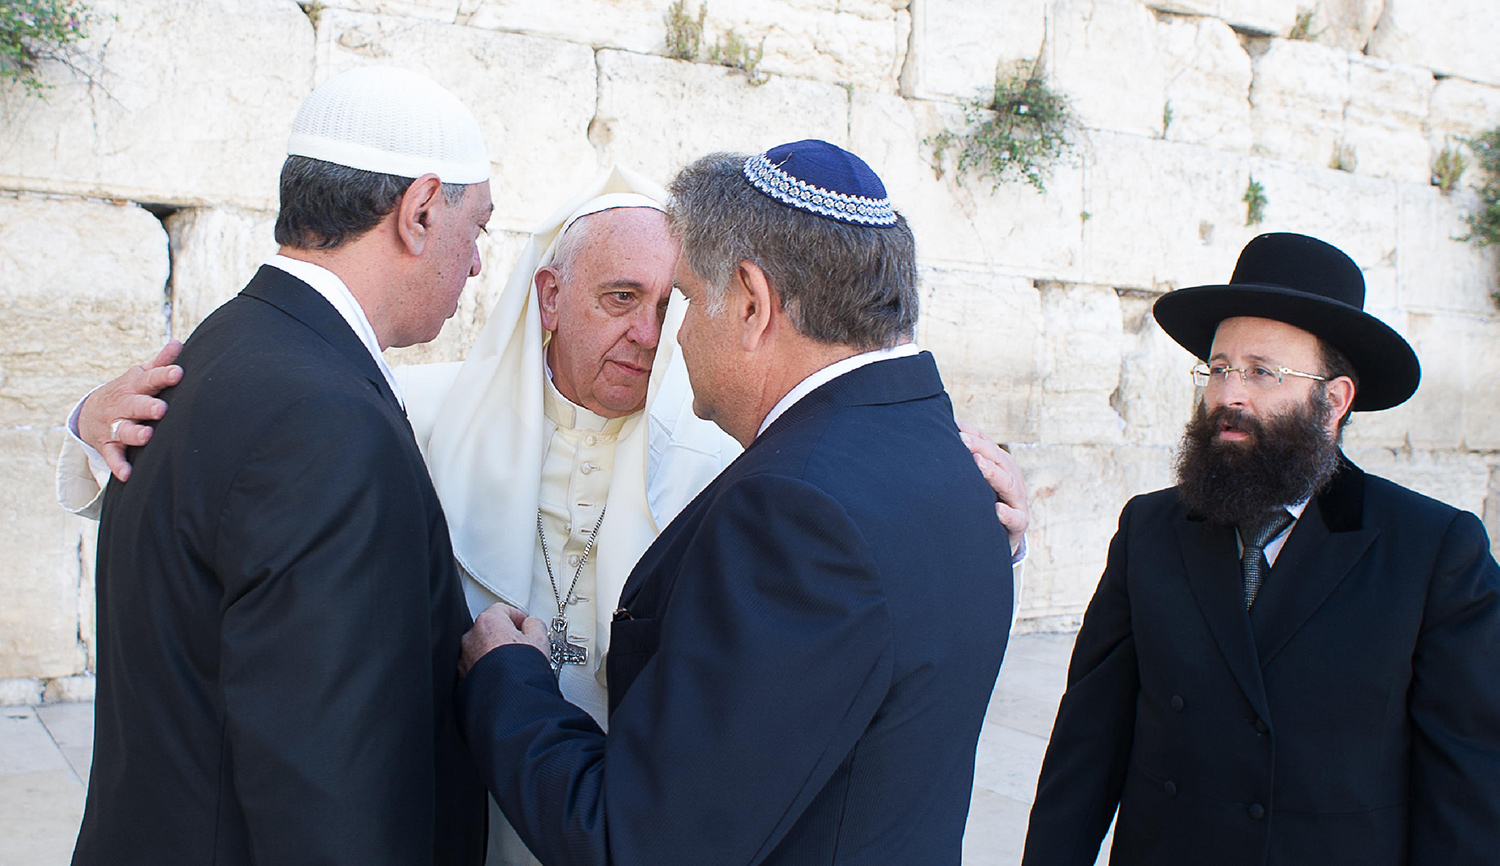 Pope Francis in Jerusalem in 2014. Eric VANDEVILLE/Gamma-Rapho via Getty Images.